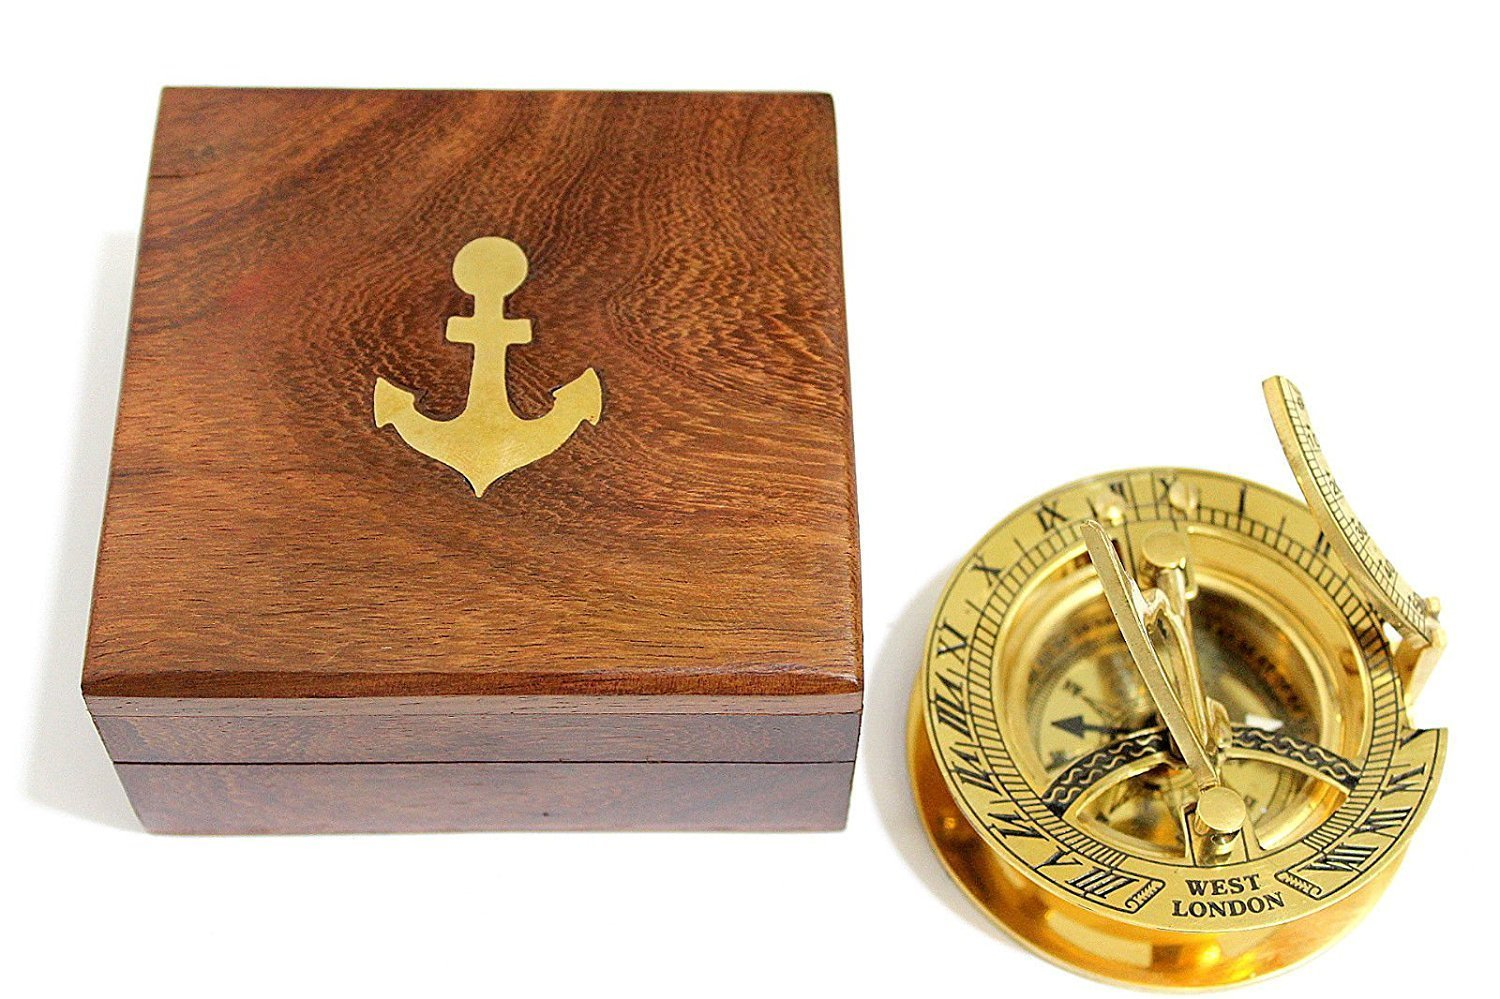 THORINSTRUMENTS (with device) 3.5'' Sundial Compass With Teak Wood Box Inlaid With Solid Brass by THORINSTRUMENTS (with device)